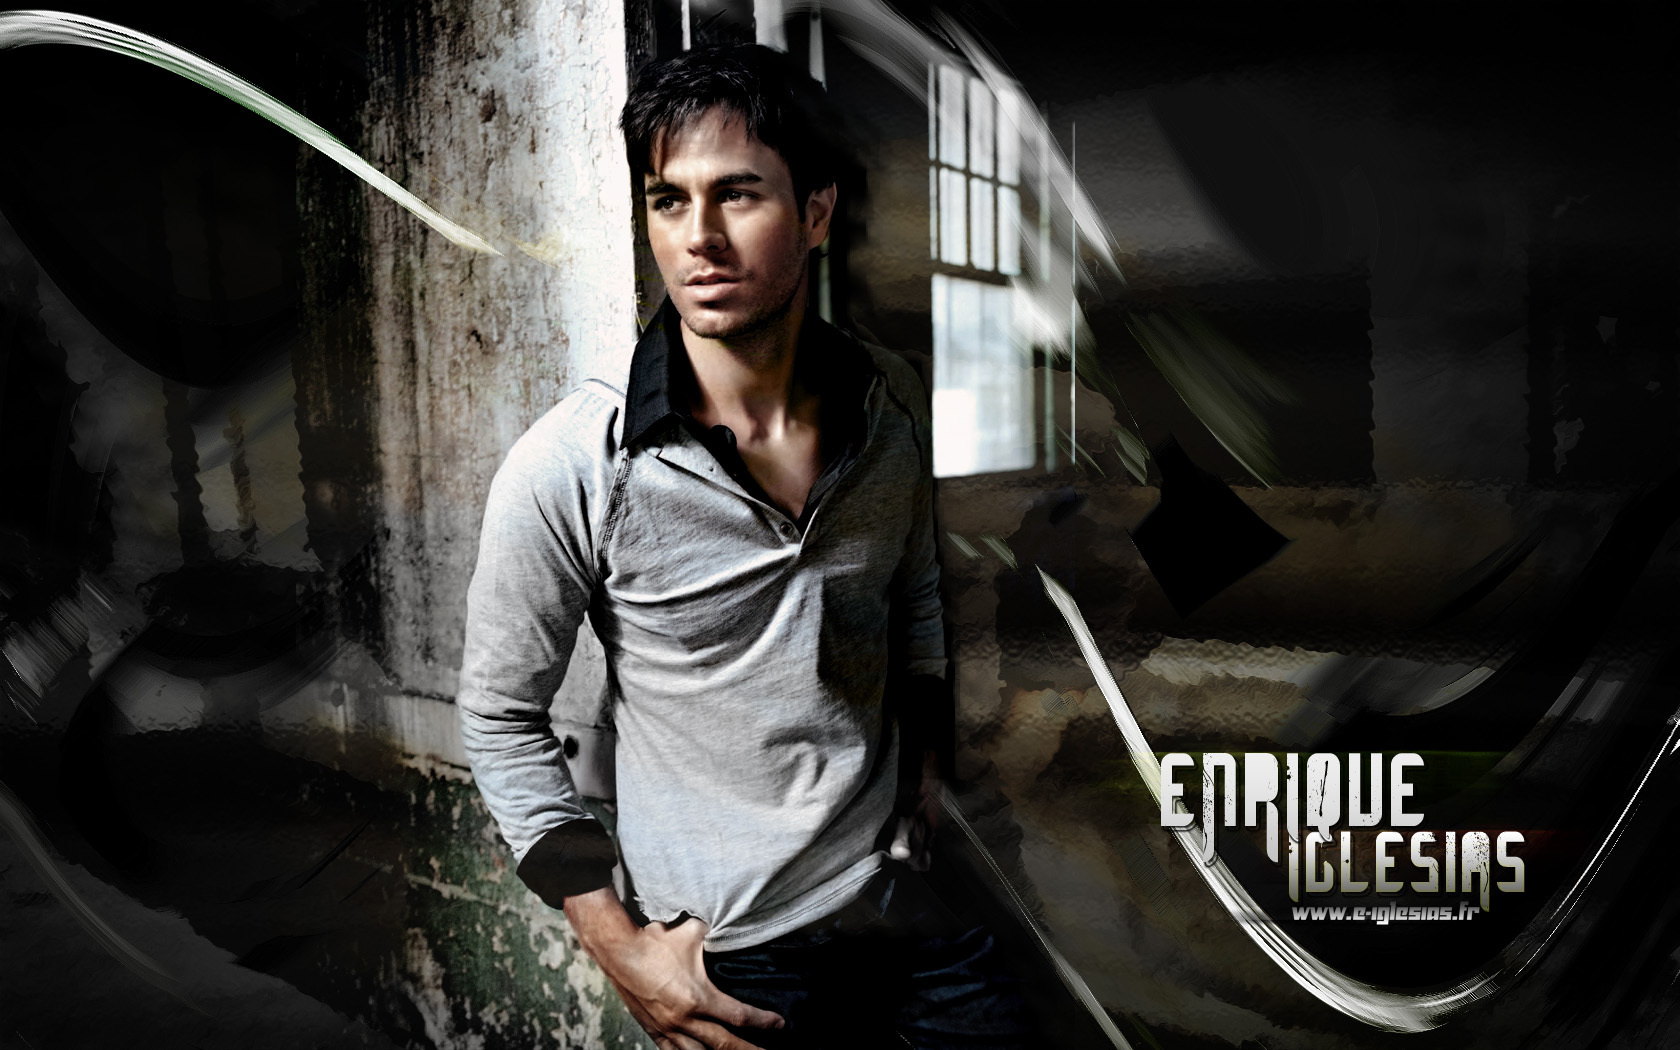 http://images4.fanpop.com/image/photos/17600000/Enrique-Iglesias-enrique-17679552-1680-1050.jpg